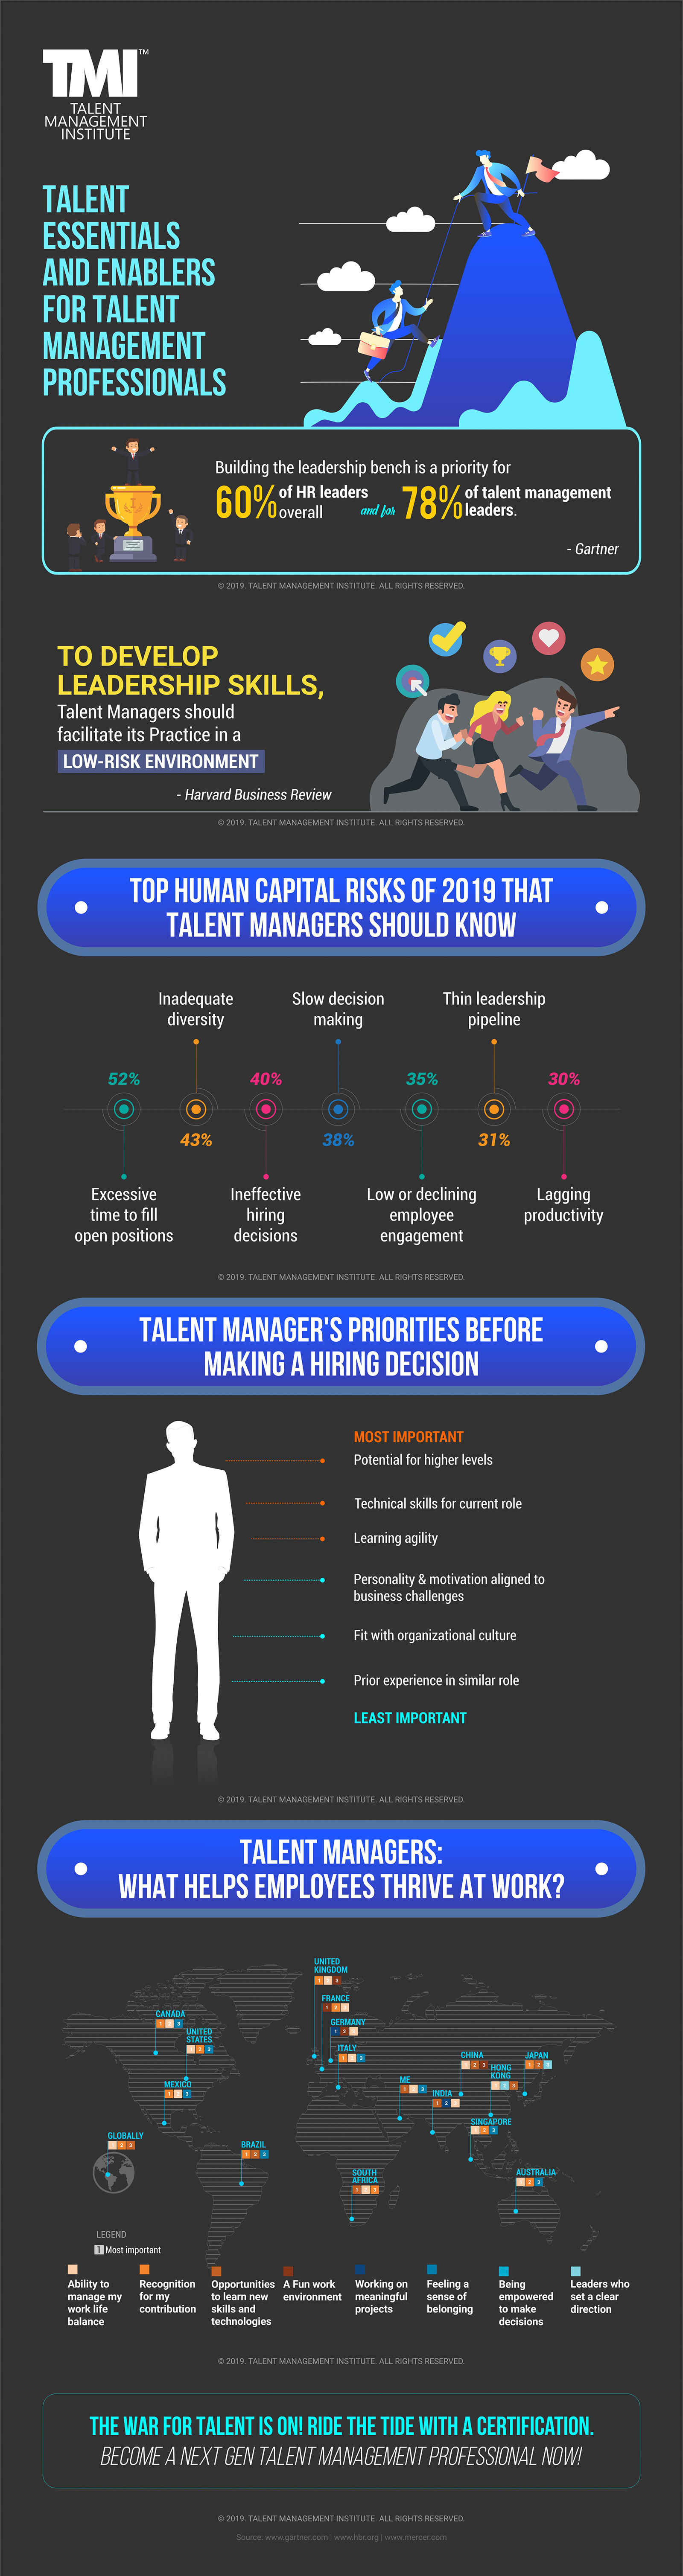 Talent Essentials and Enablers for Talent Management Professionals